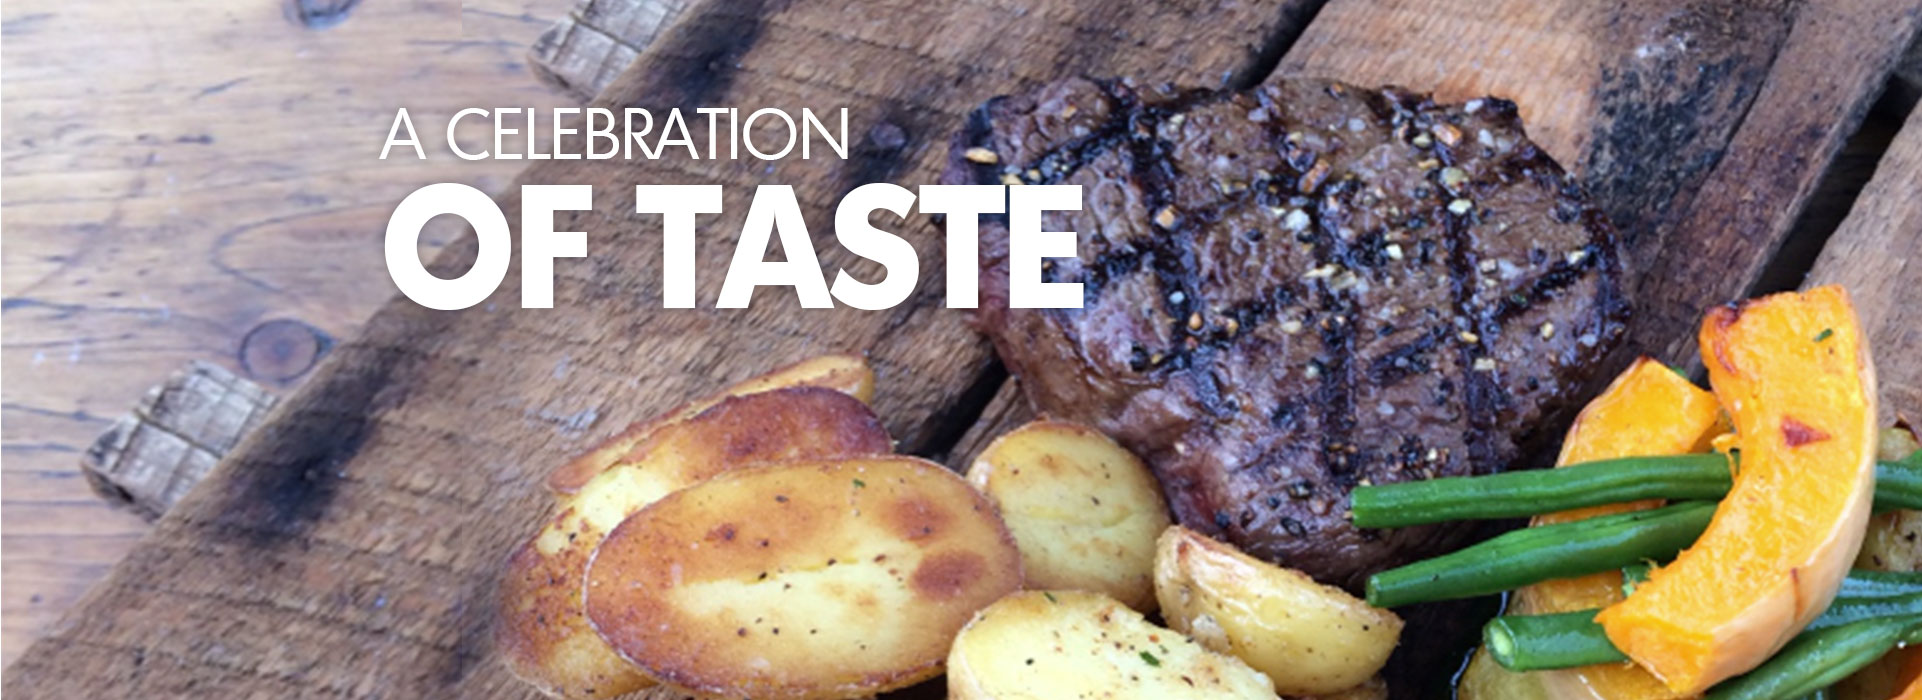 A Celebration of Taste - Moxie's Grill & Bar